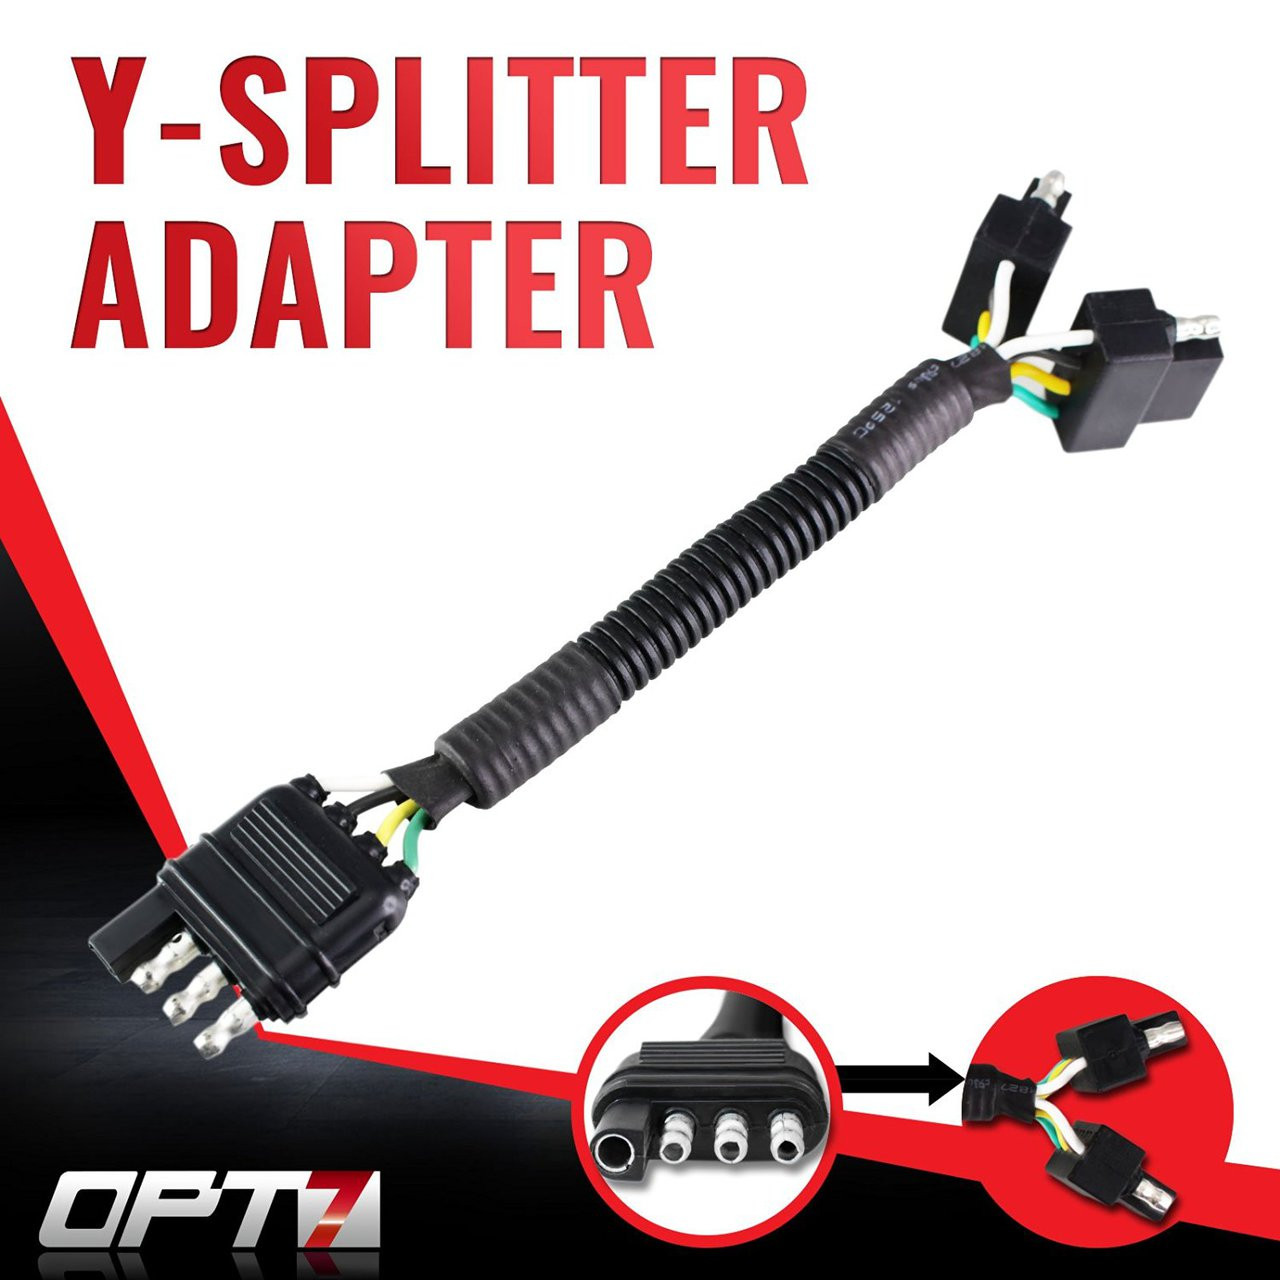 medium resolution of y splitter 4 tow pin connector adapter harness wiring for truck tailgate opt7